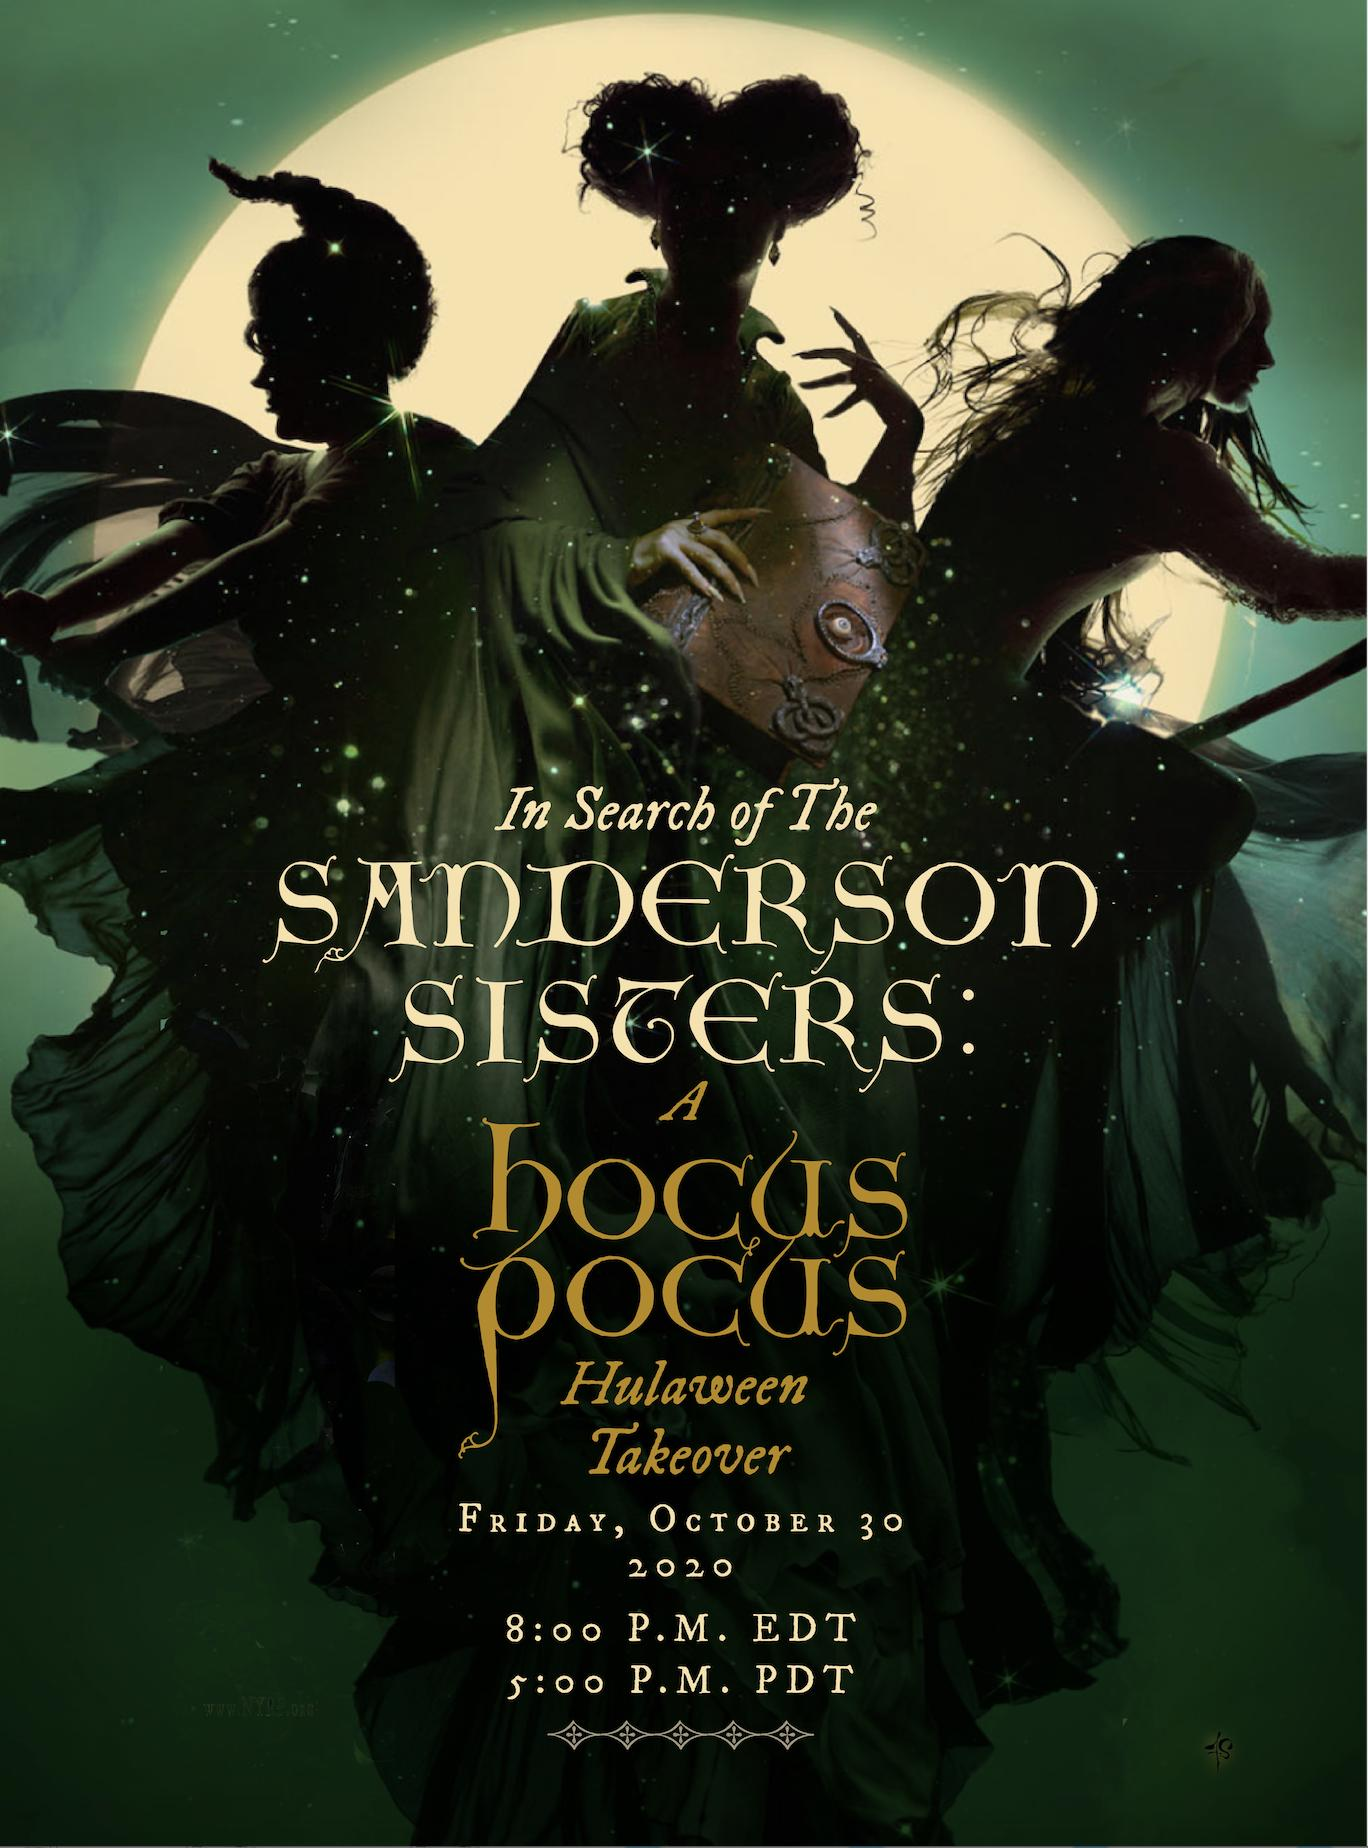 In Search of the Sanderson Sisters: A Hocus Pocus Hulaween Takeover hd on soap2day